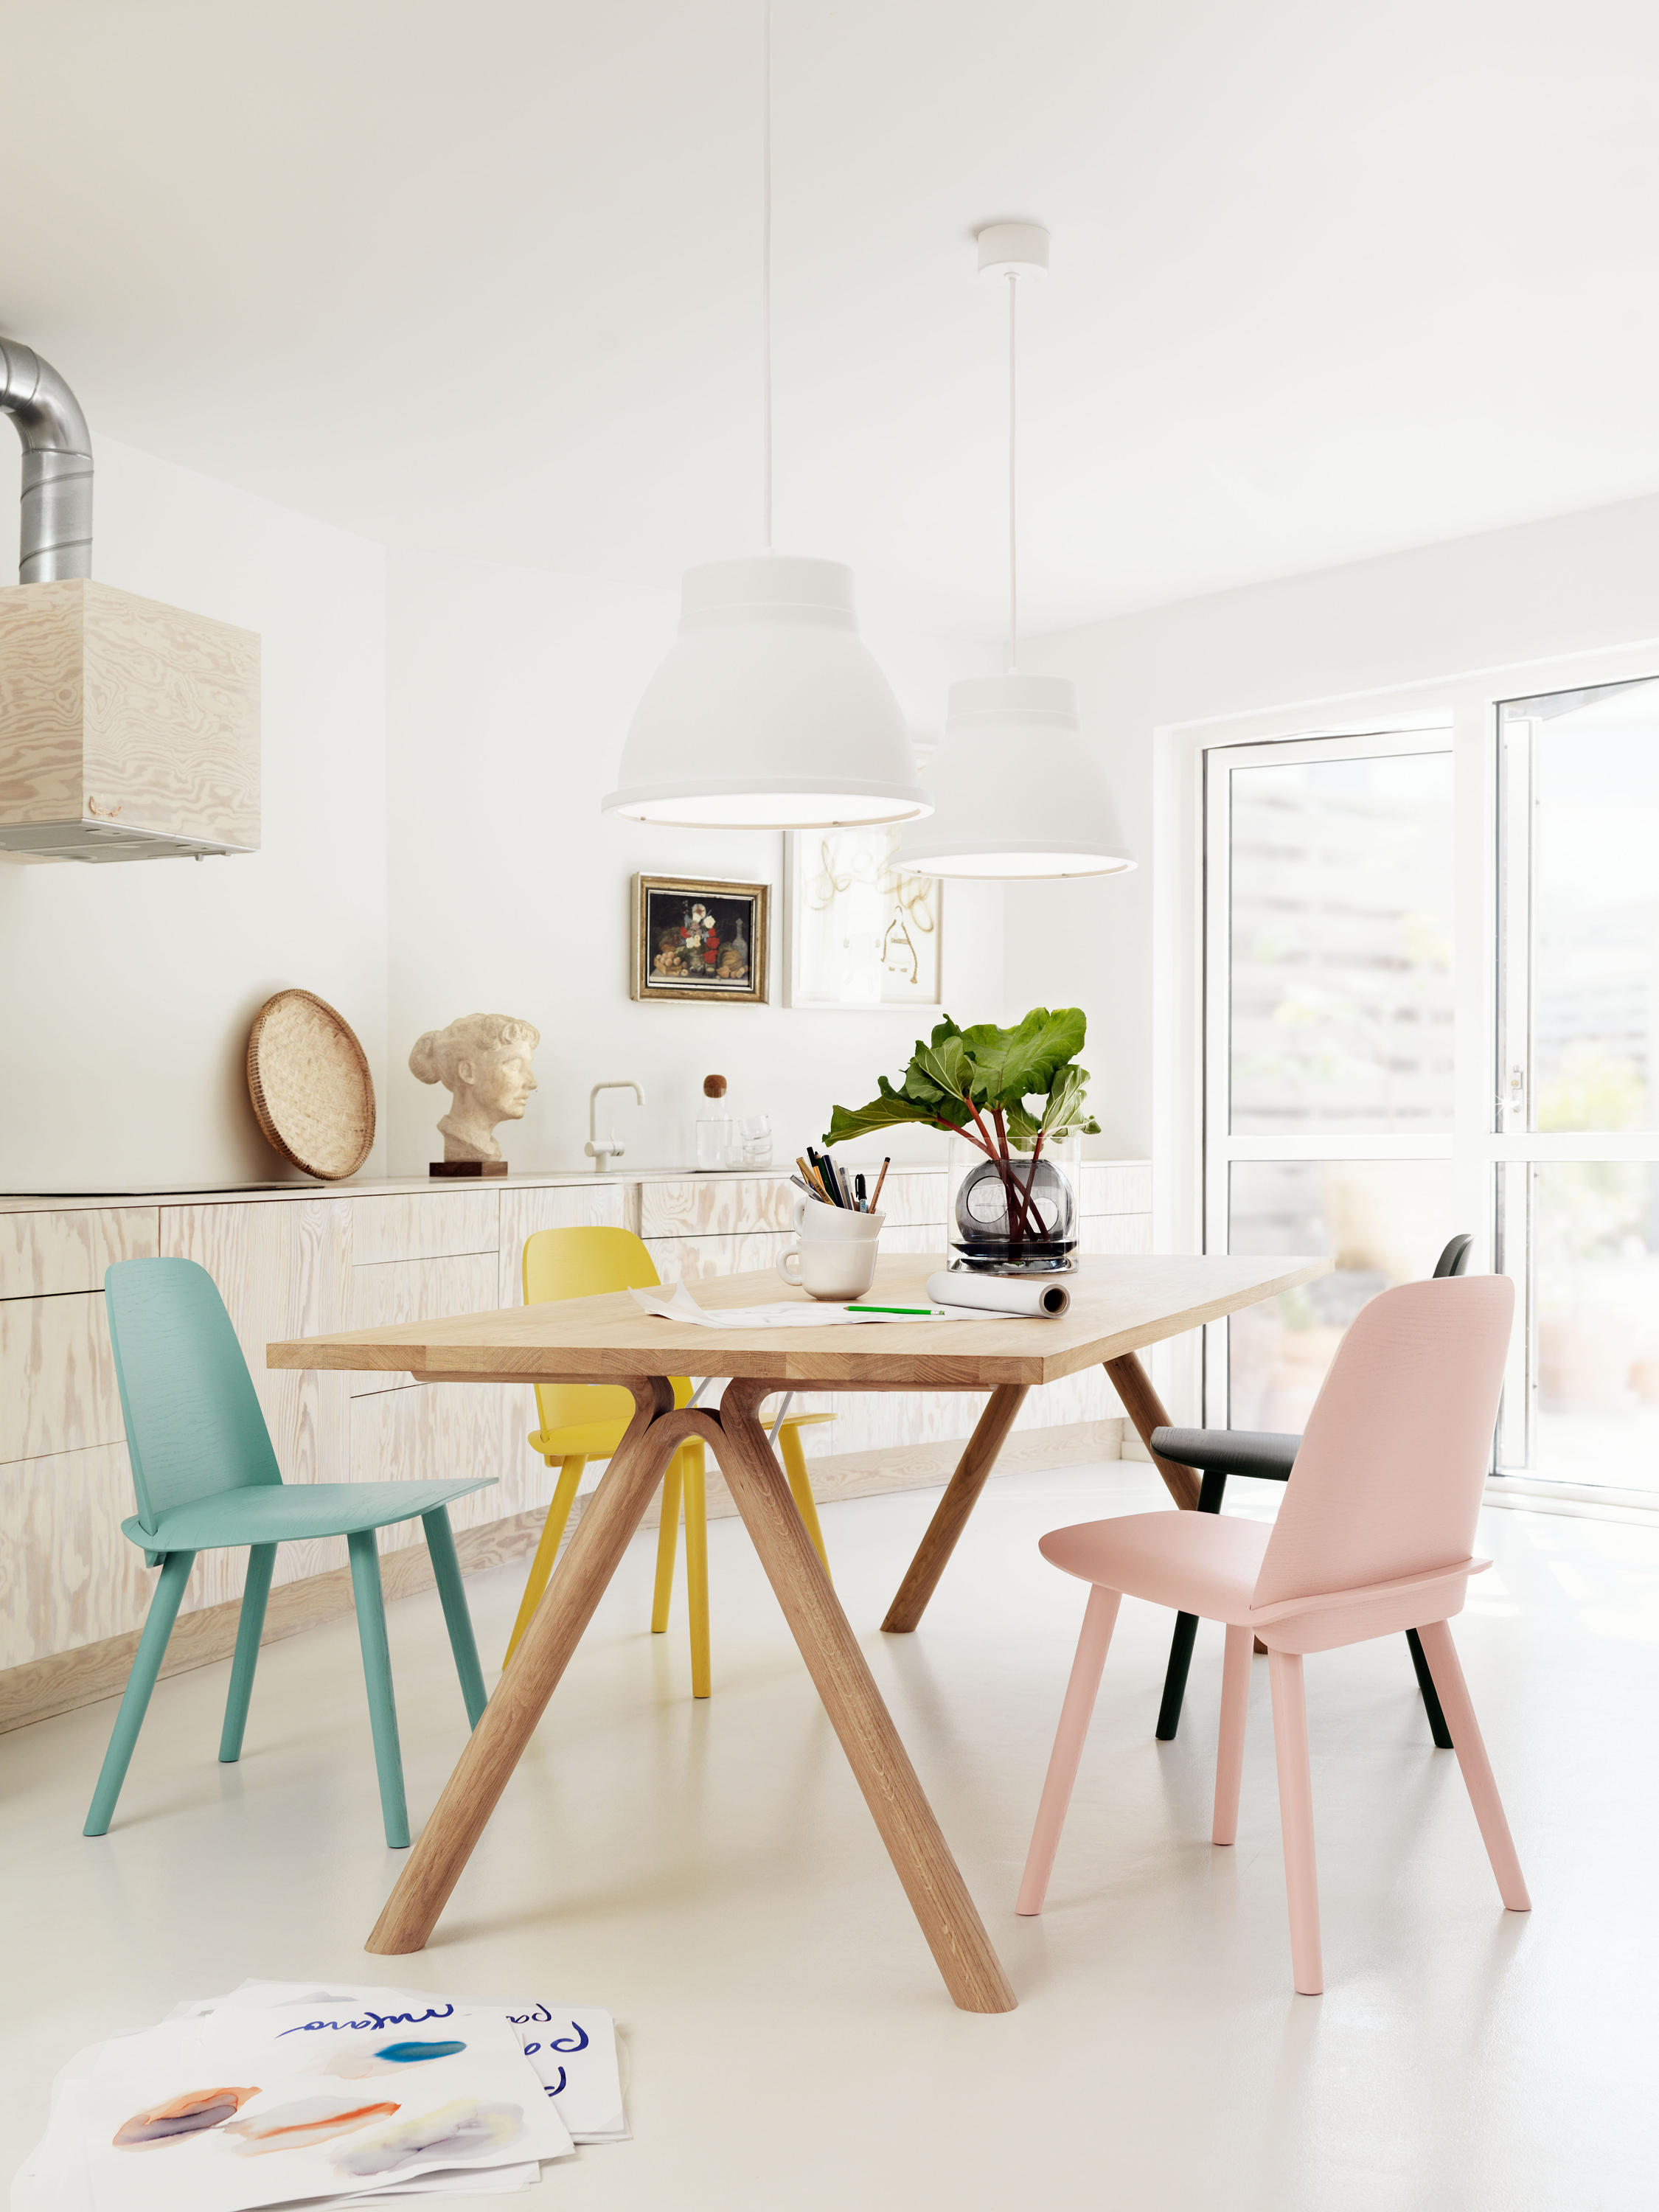 SPLIT DINING TABLE Individual desks from Muuto